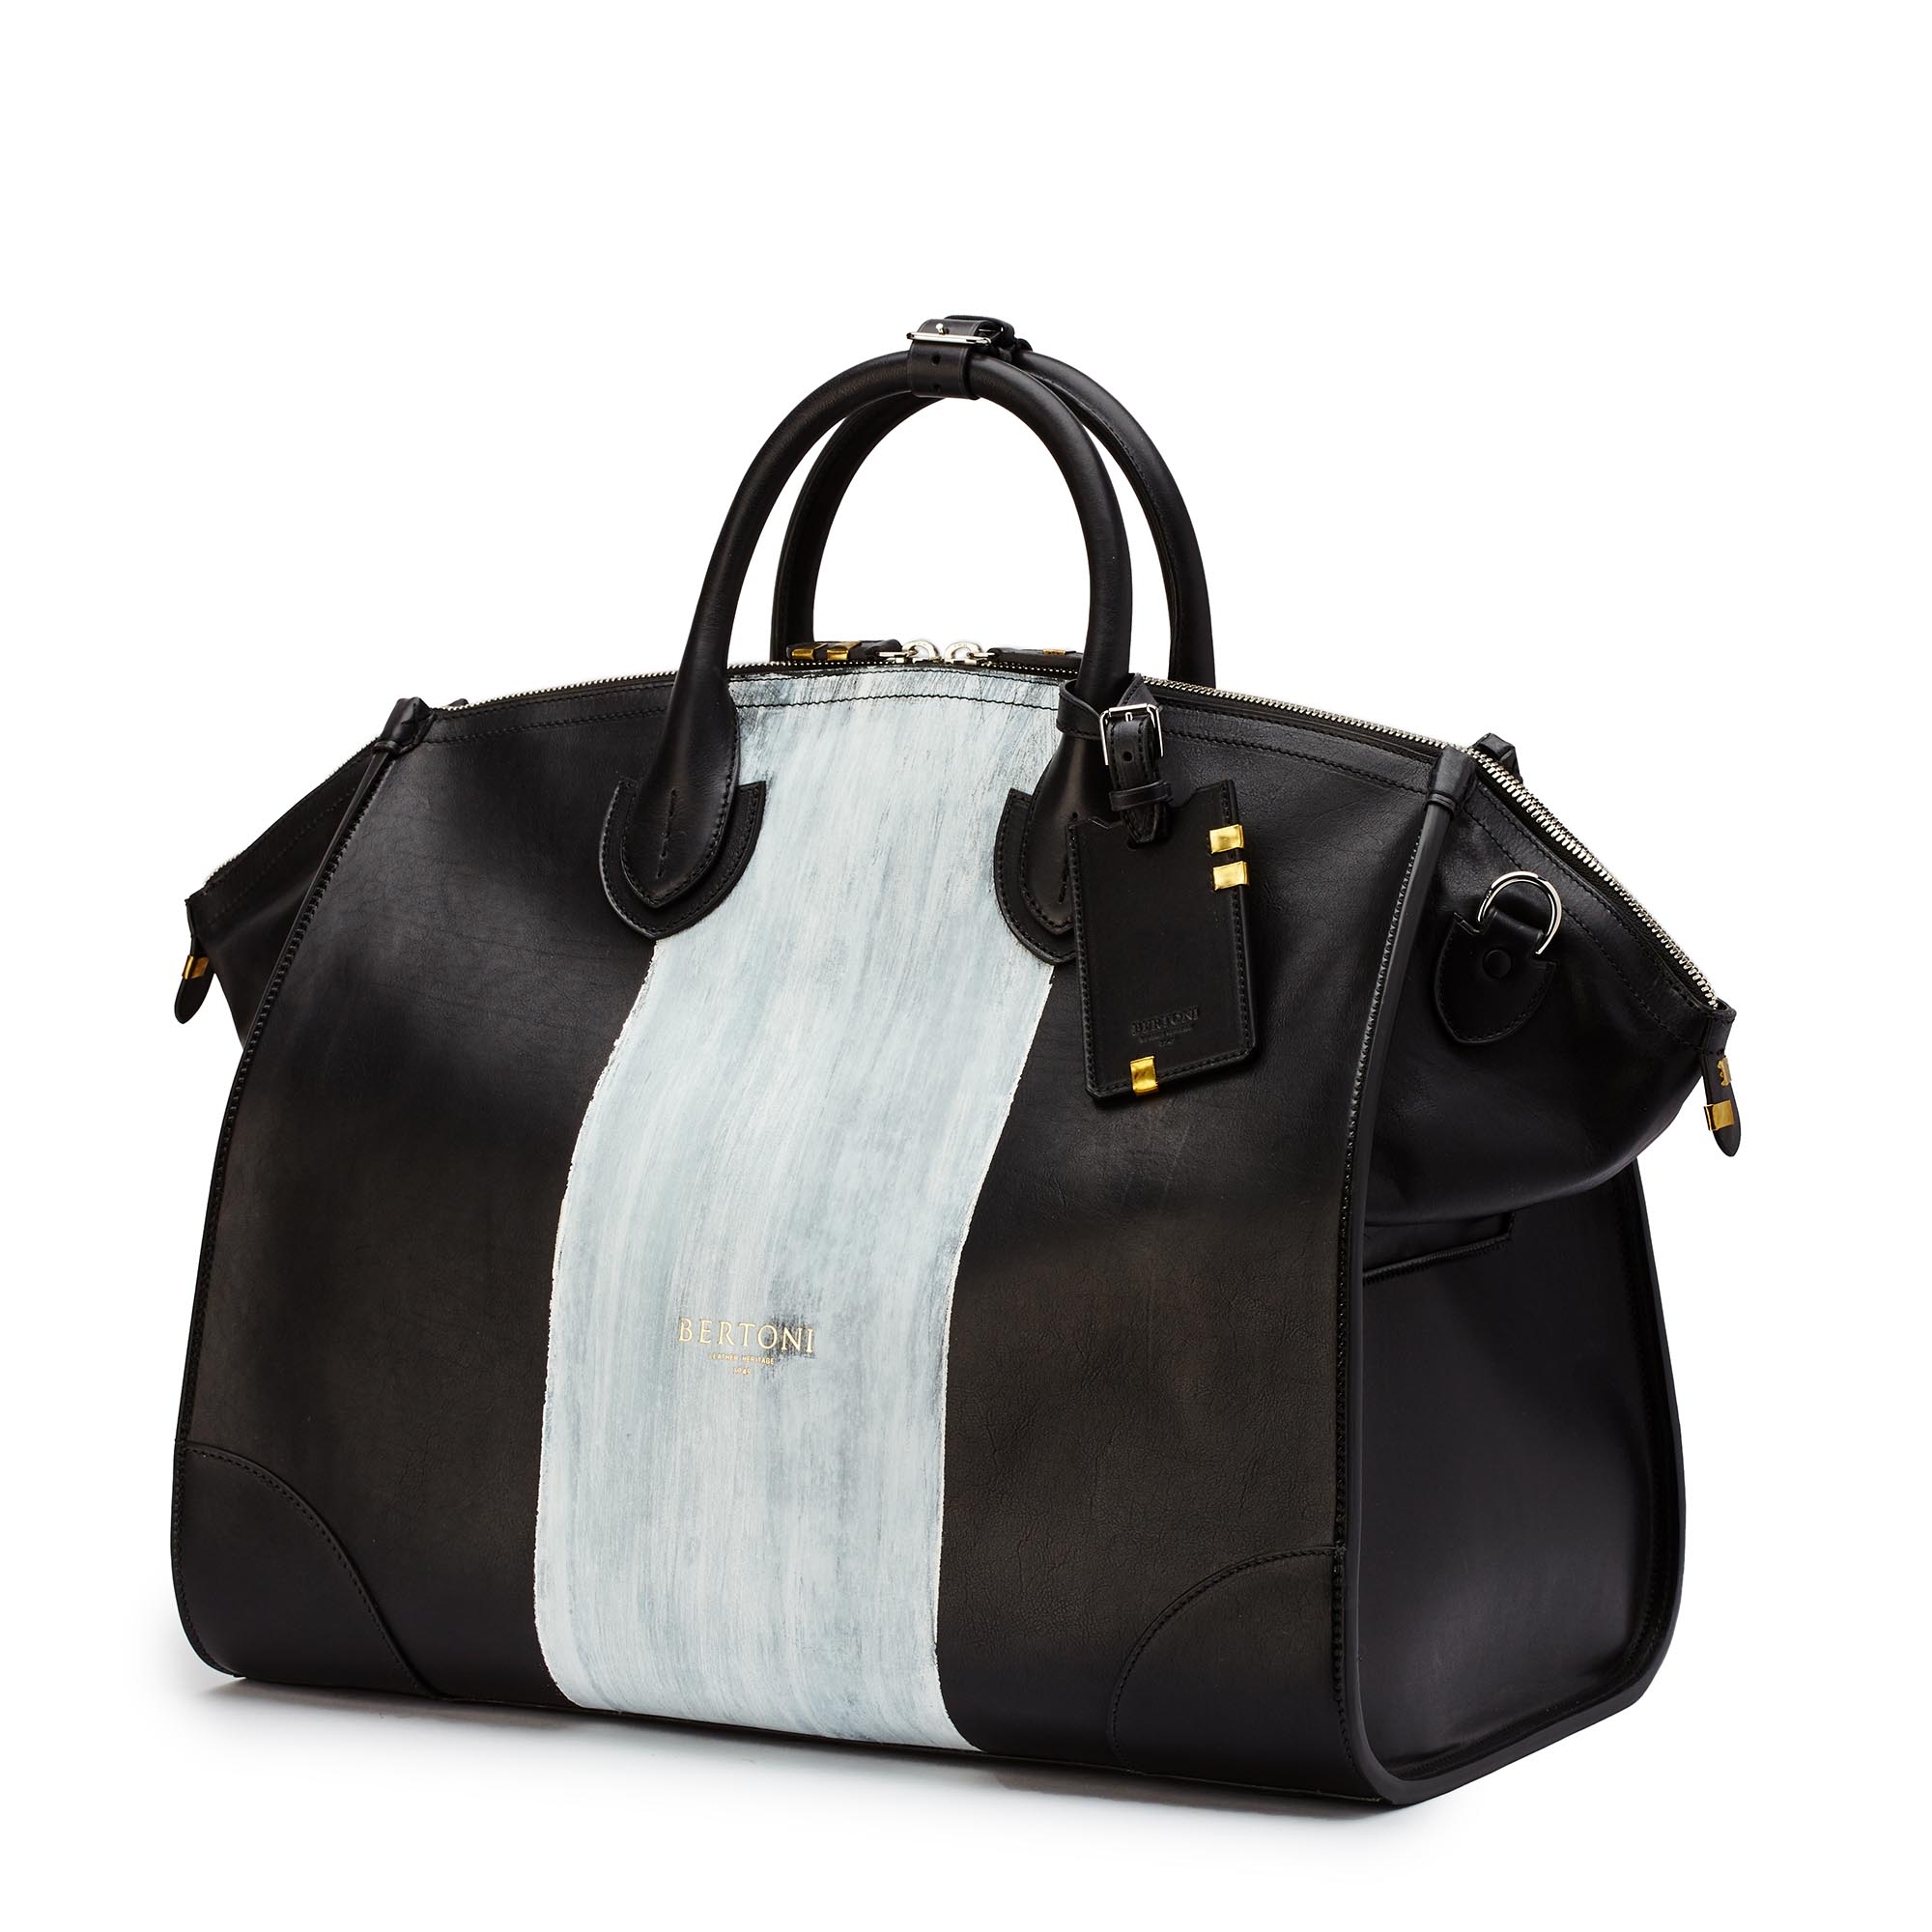 Gulliver-black-ivory-rock-calf-bag-Bertoni-1949_02